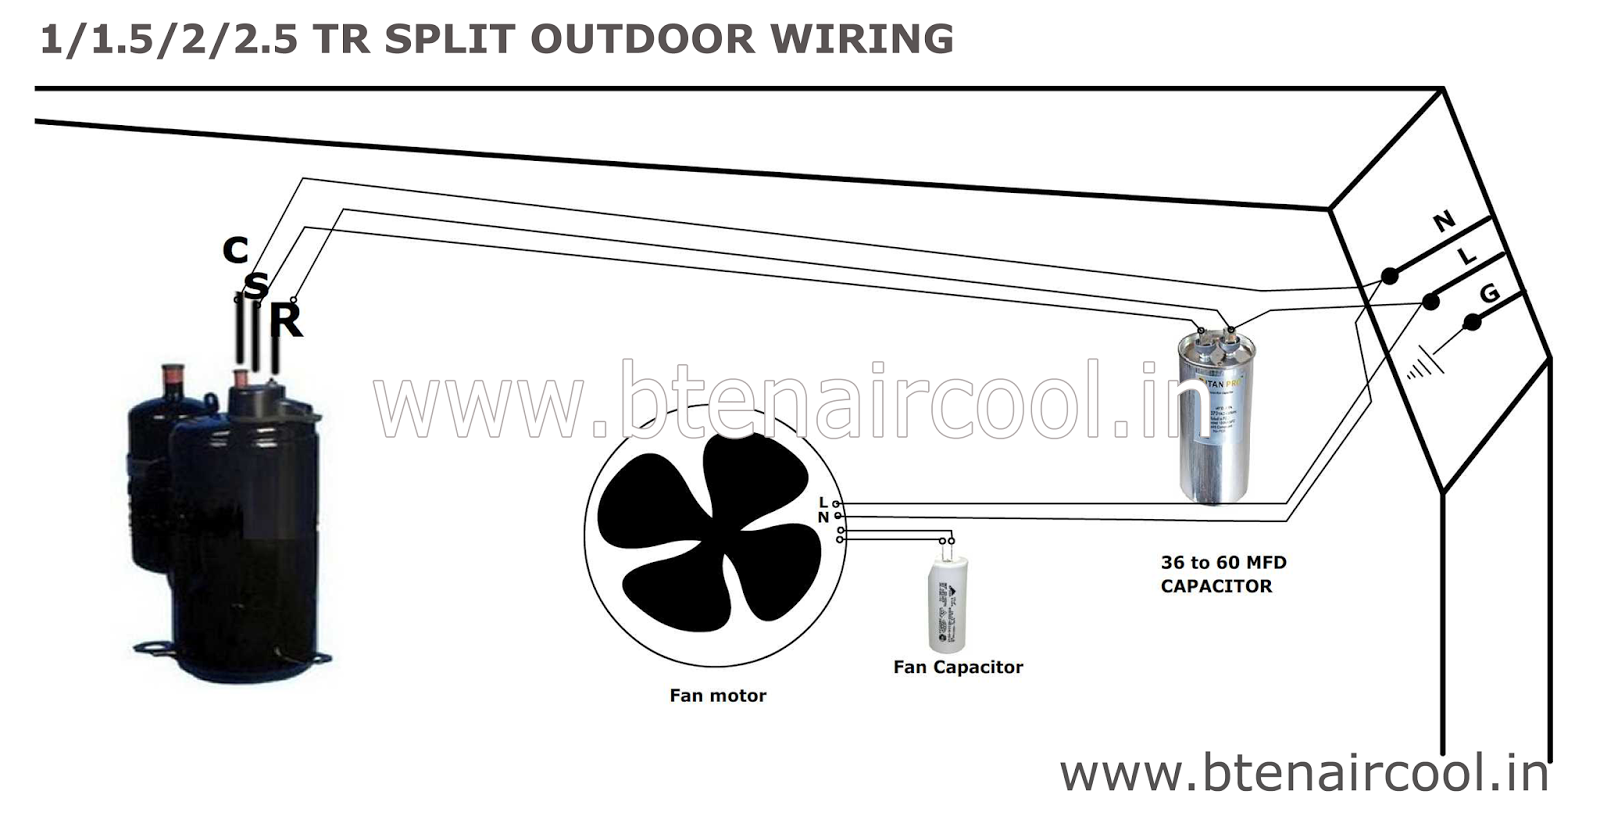 outdoor wiring diagram bten aircool rh btenaircool blogspot com external wiring diagram